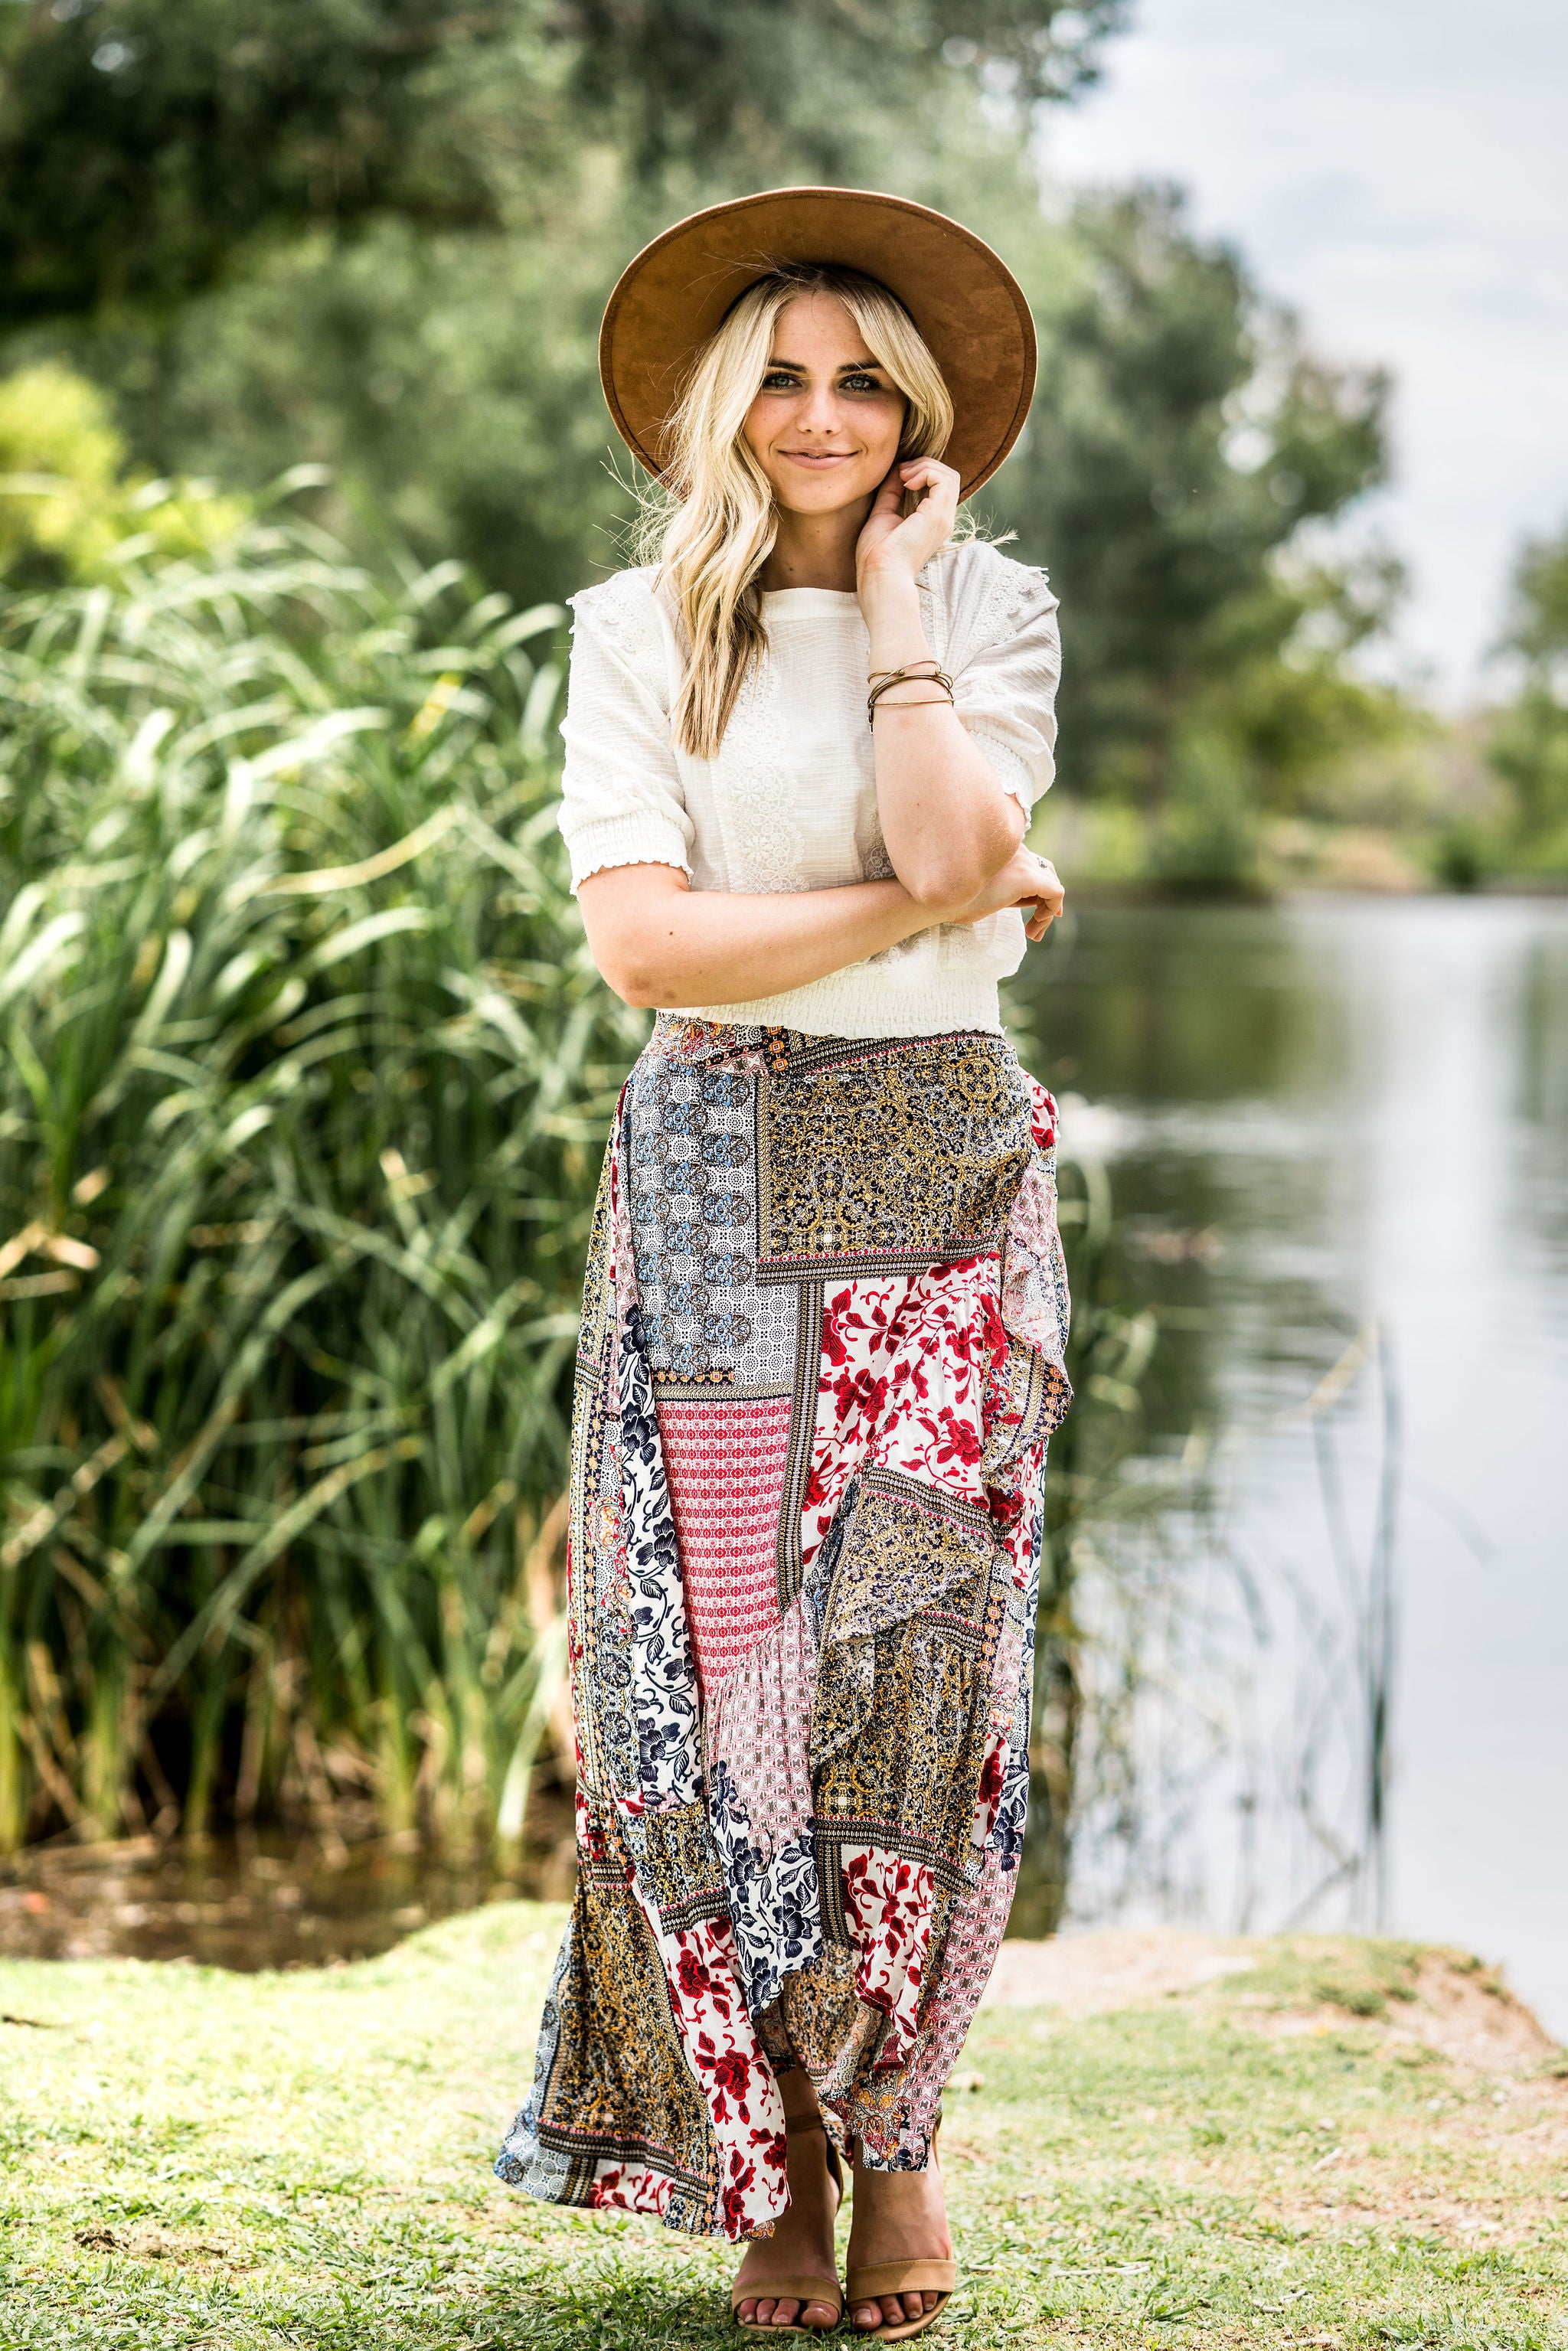 THE JUNI PATCHWORK SKIRT IN MULTI